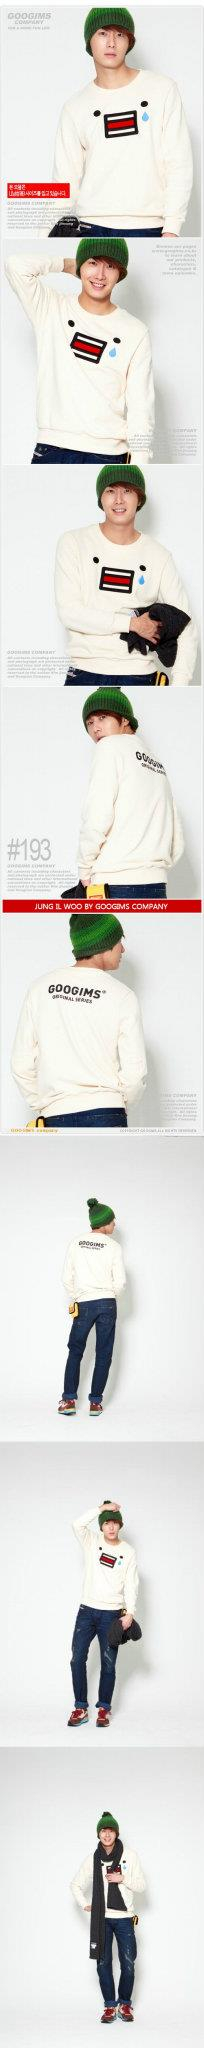 2011 10 Jung II-woo for Googims. Part 3 00018